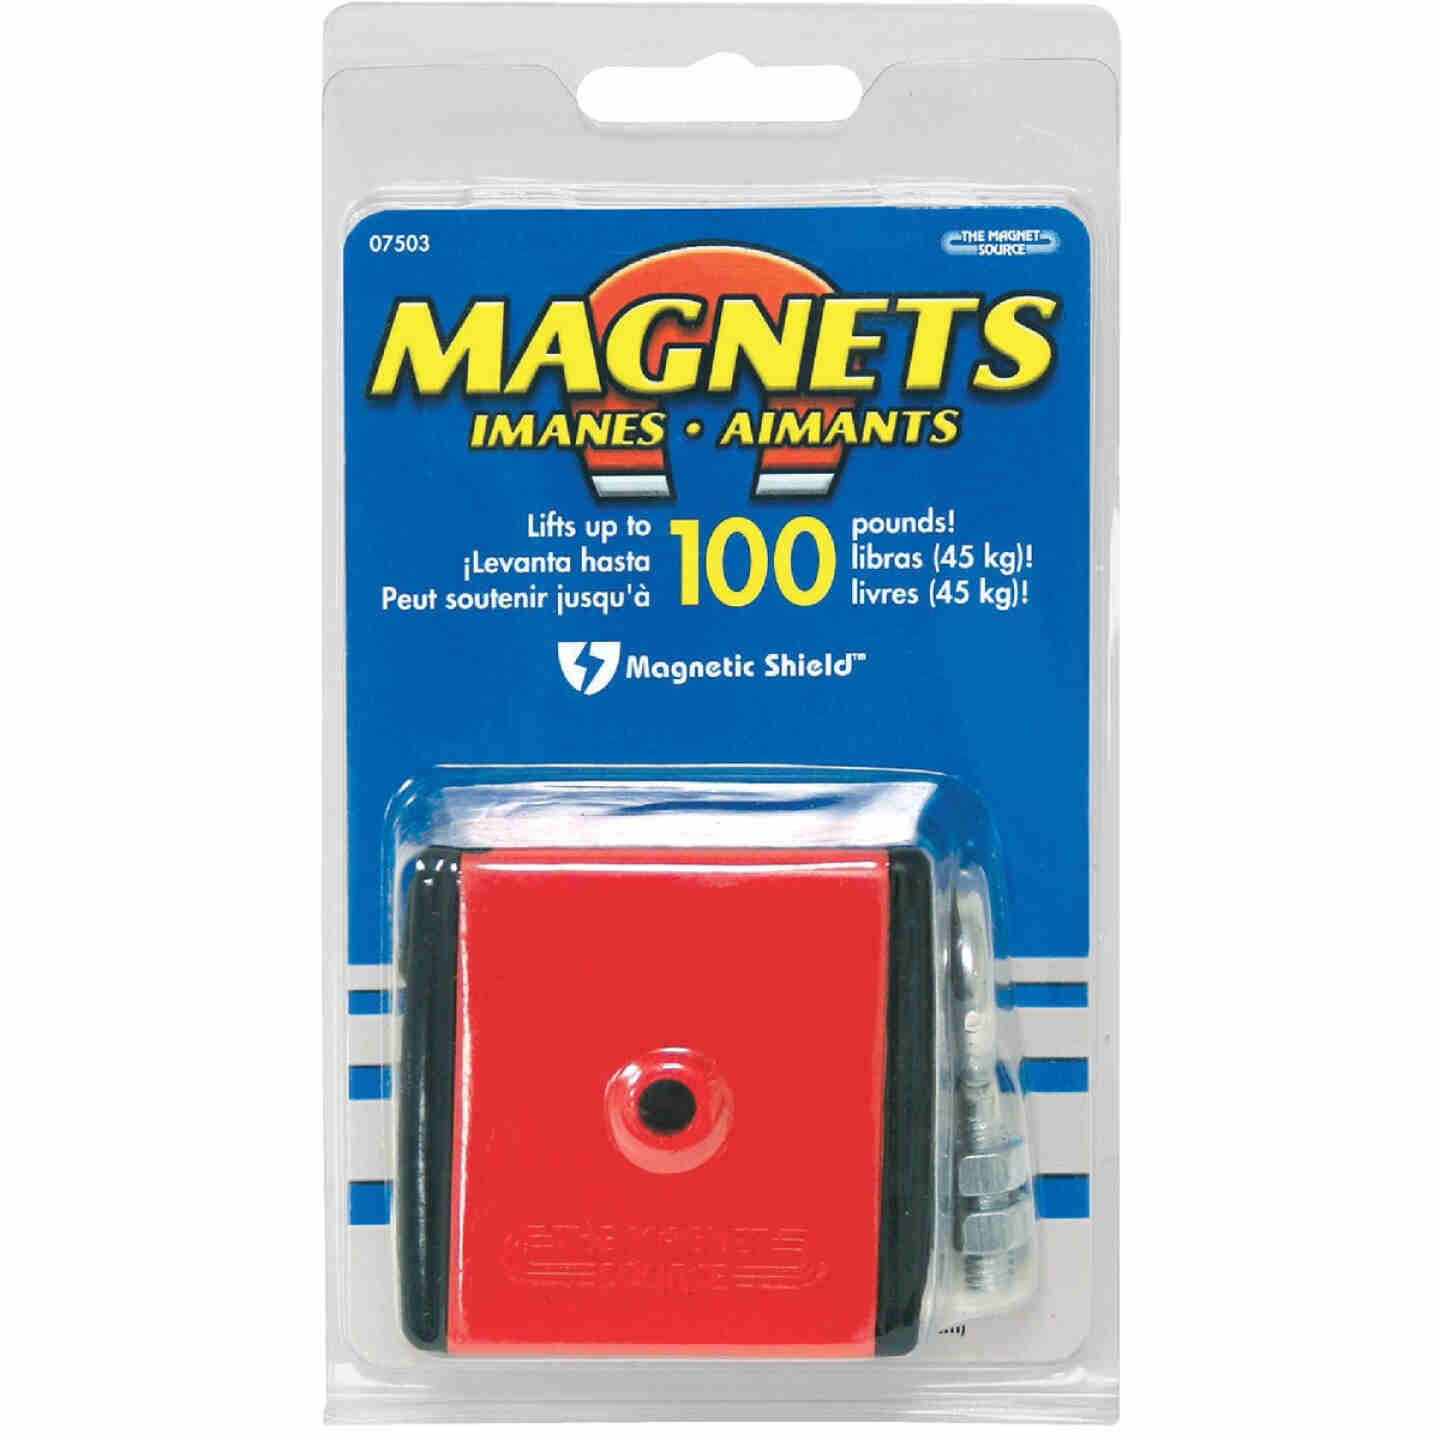 Master Magnetics 100 Lb. Holding, Retrieving and Lifting Magnet Image 2